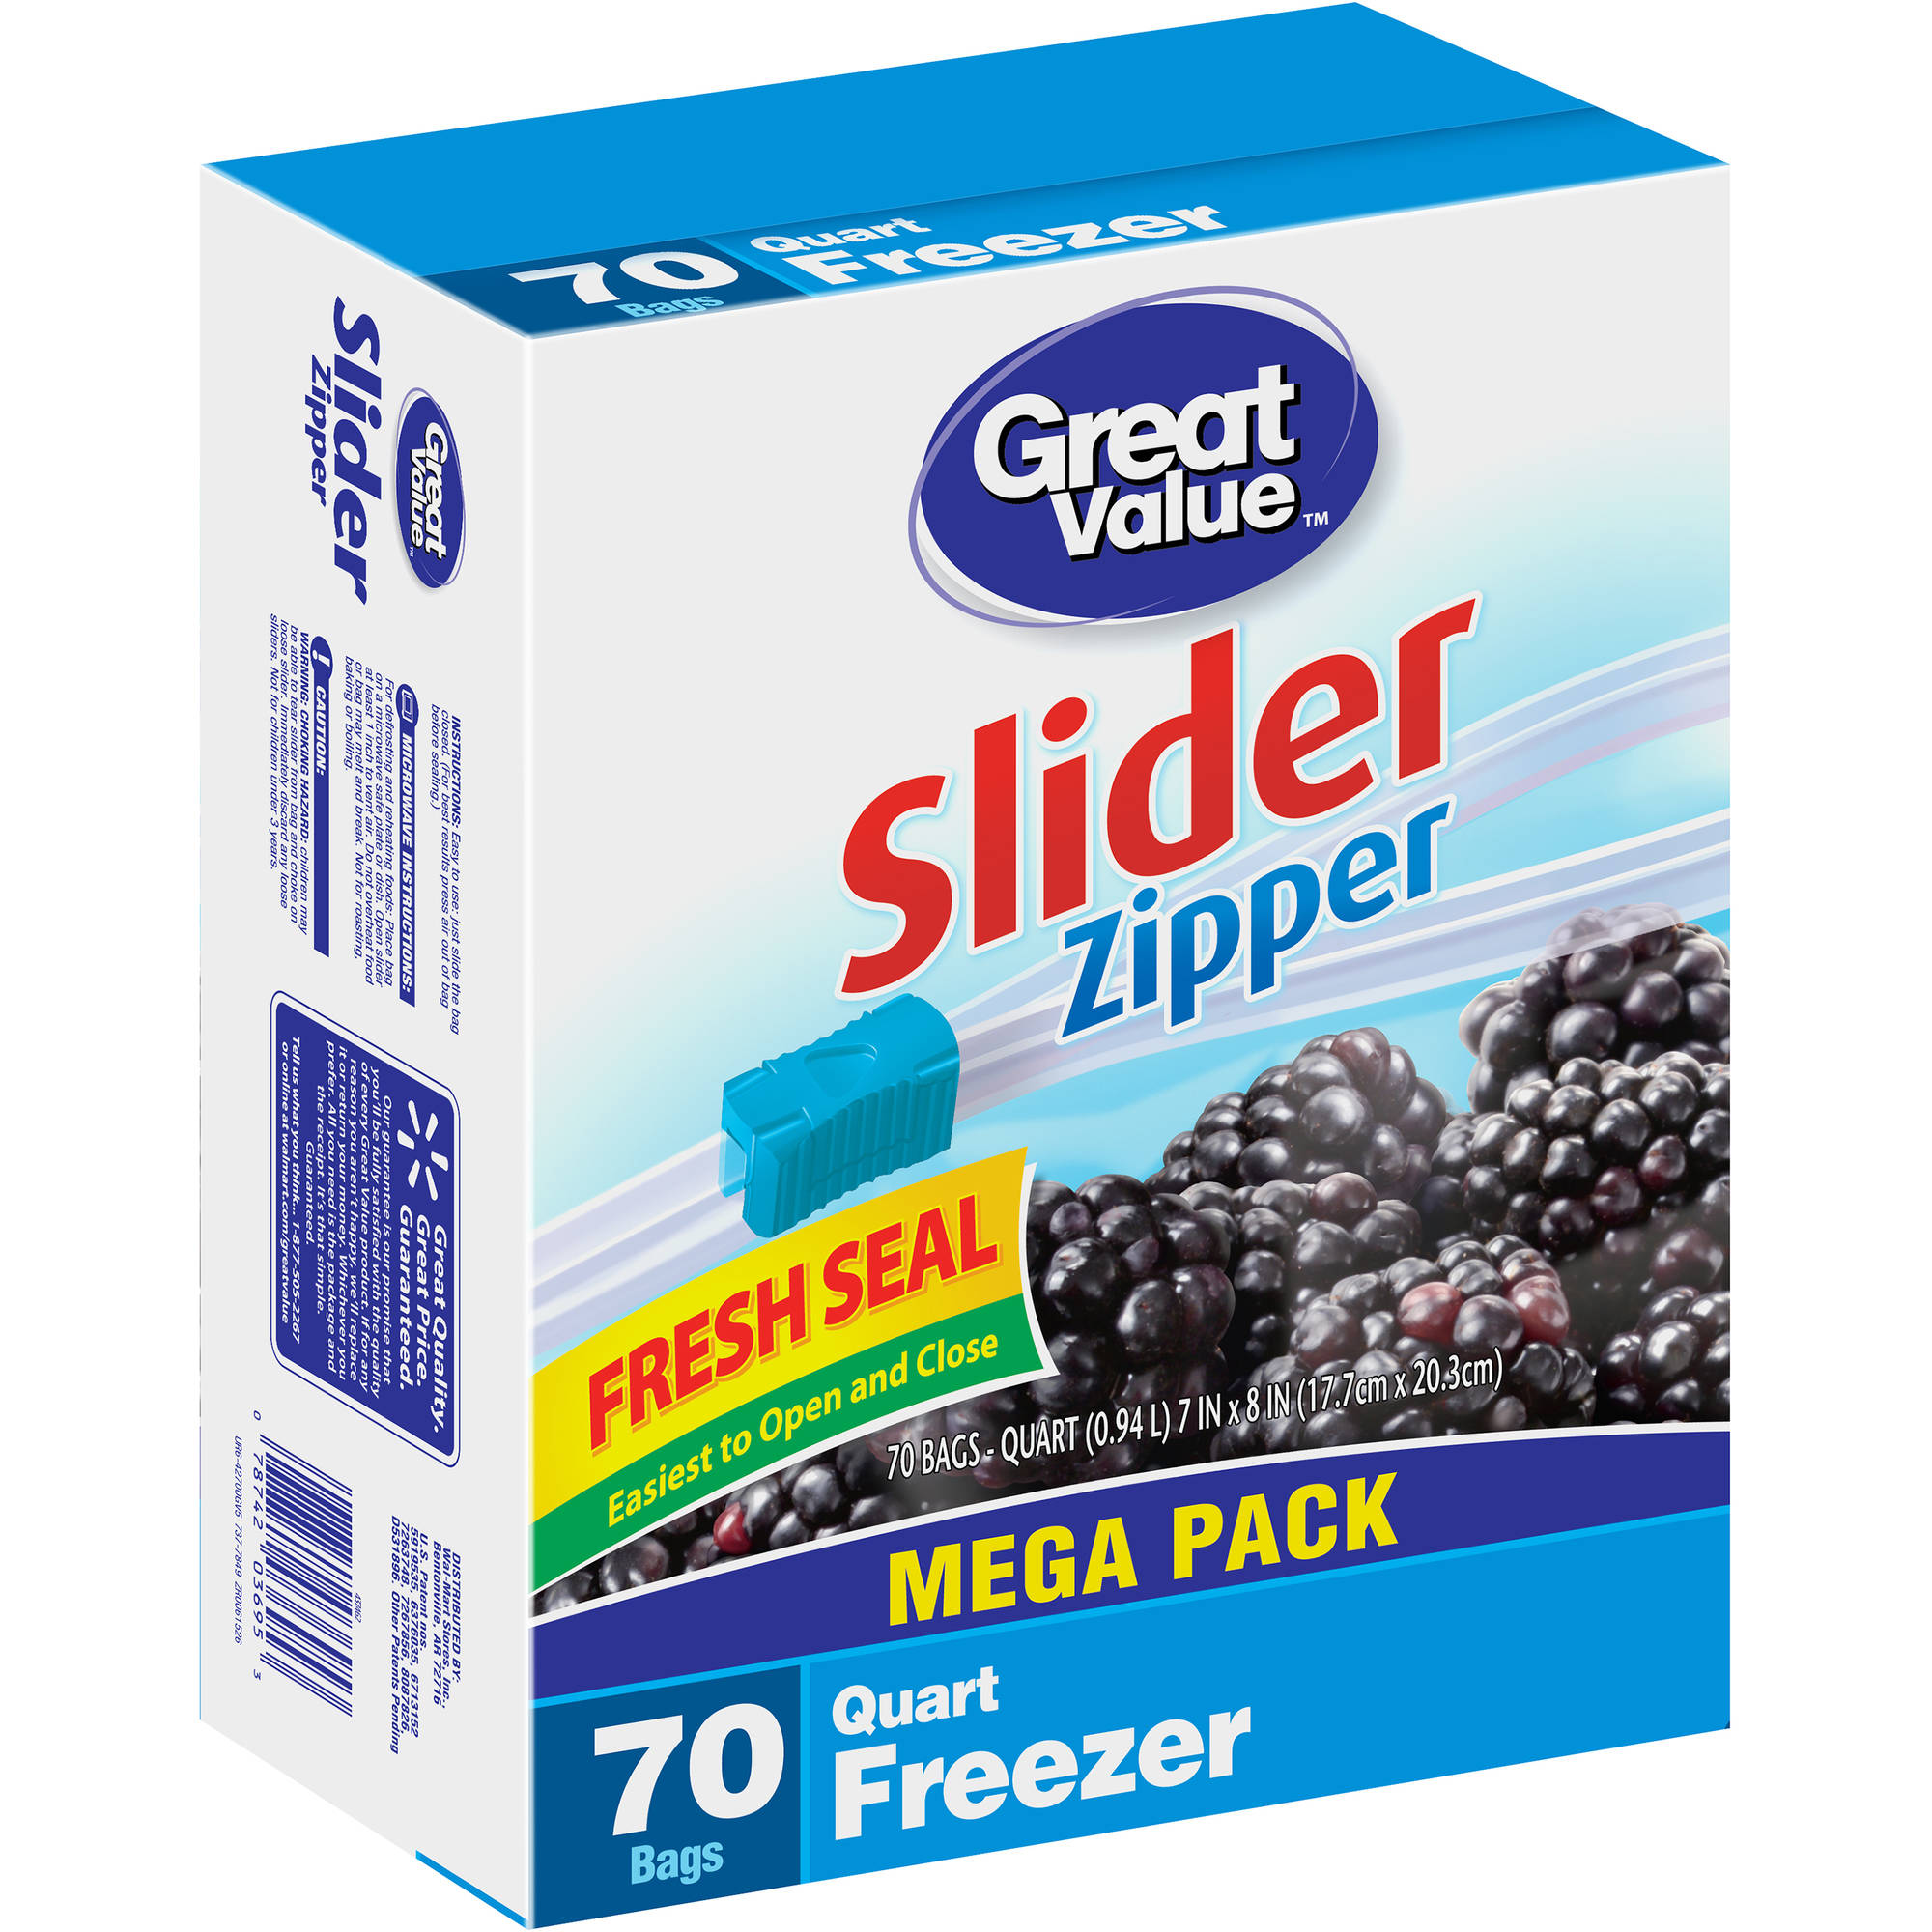 Great Value Quart Freezer Bags, 70 count